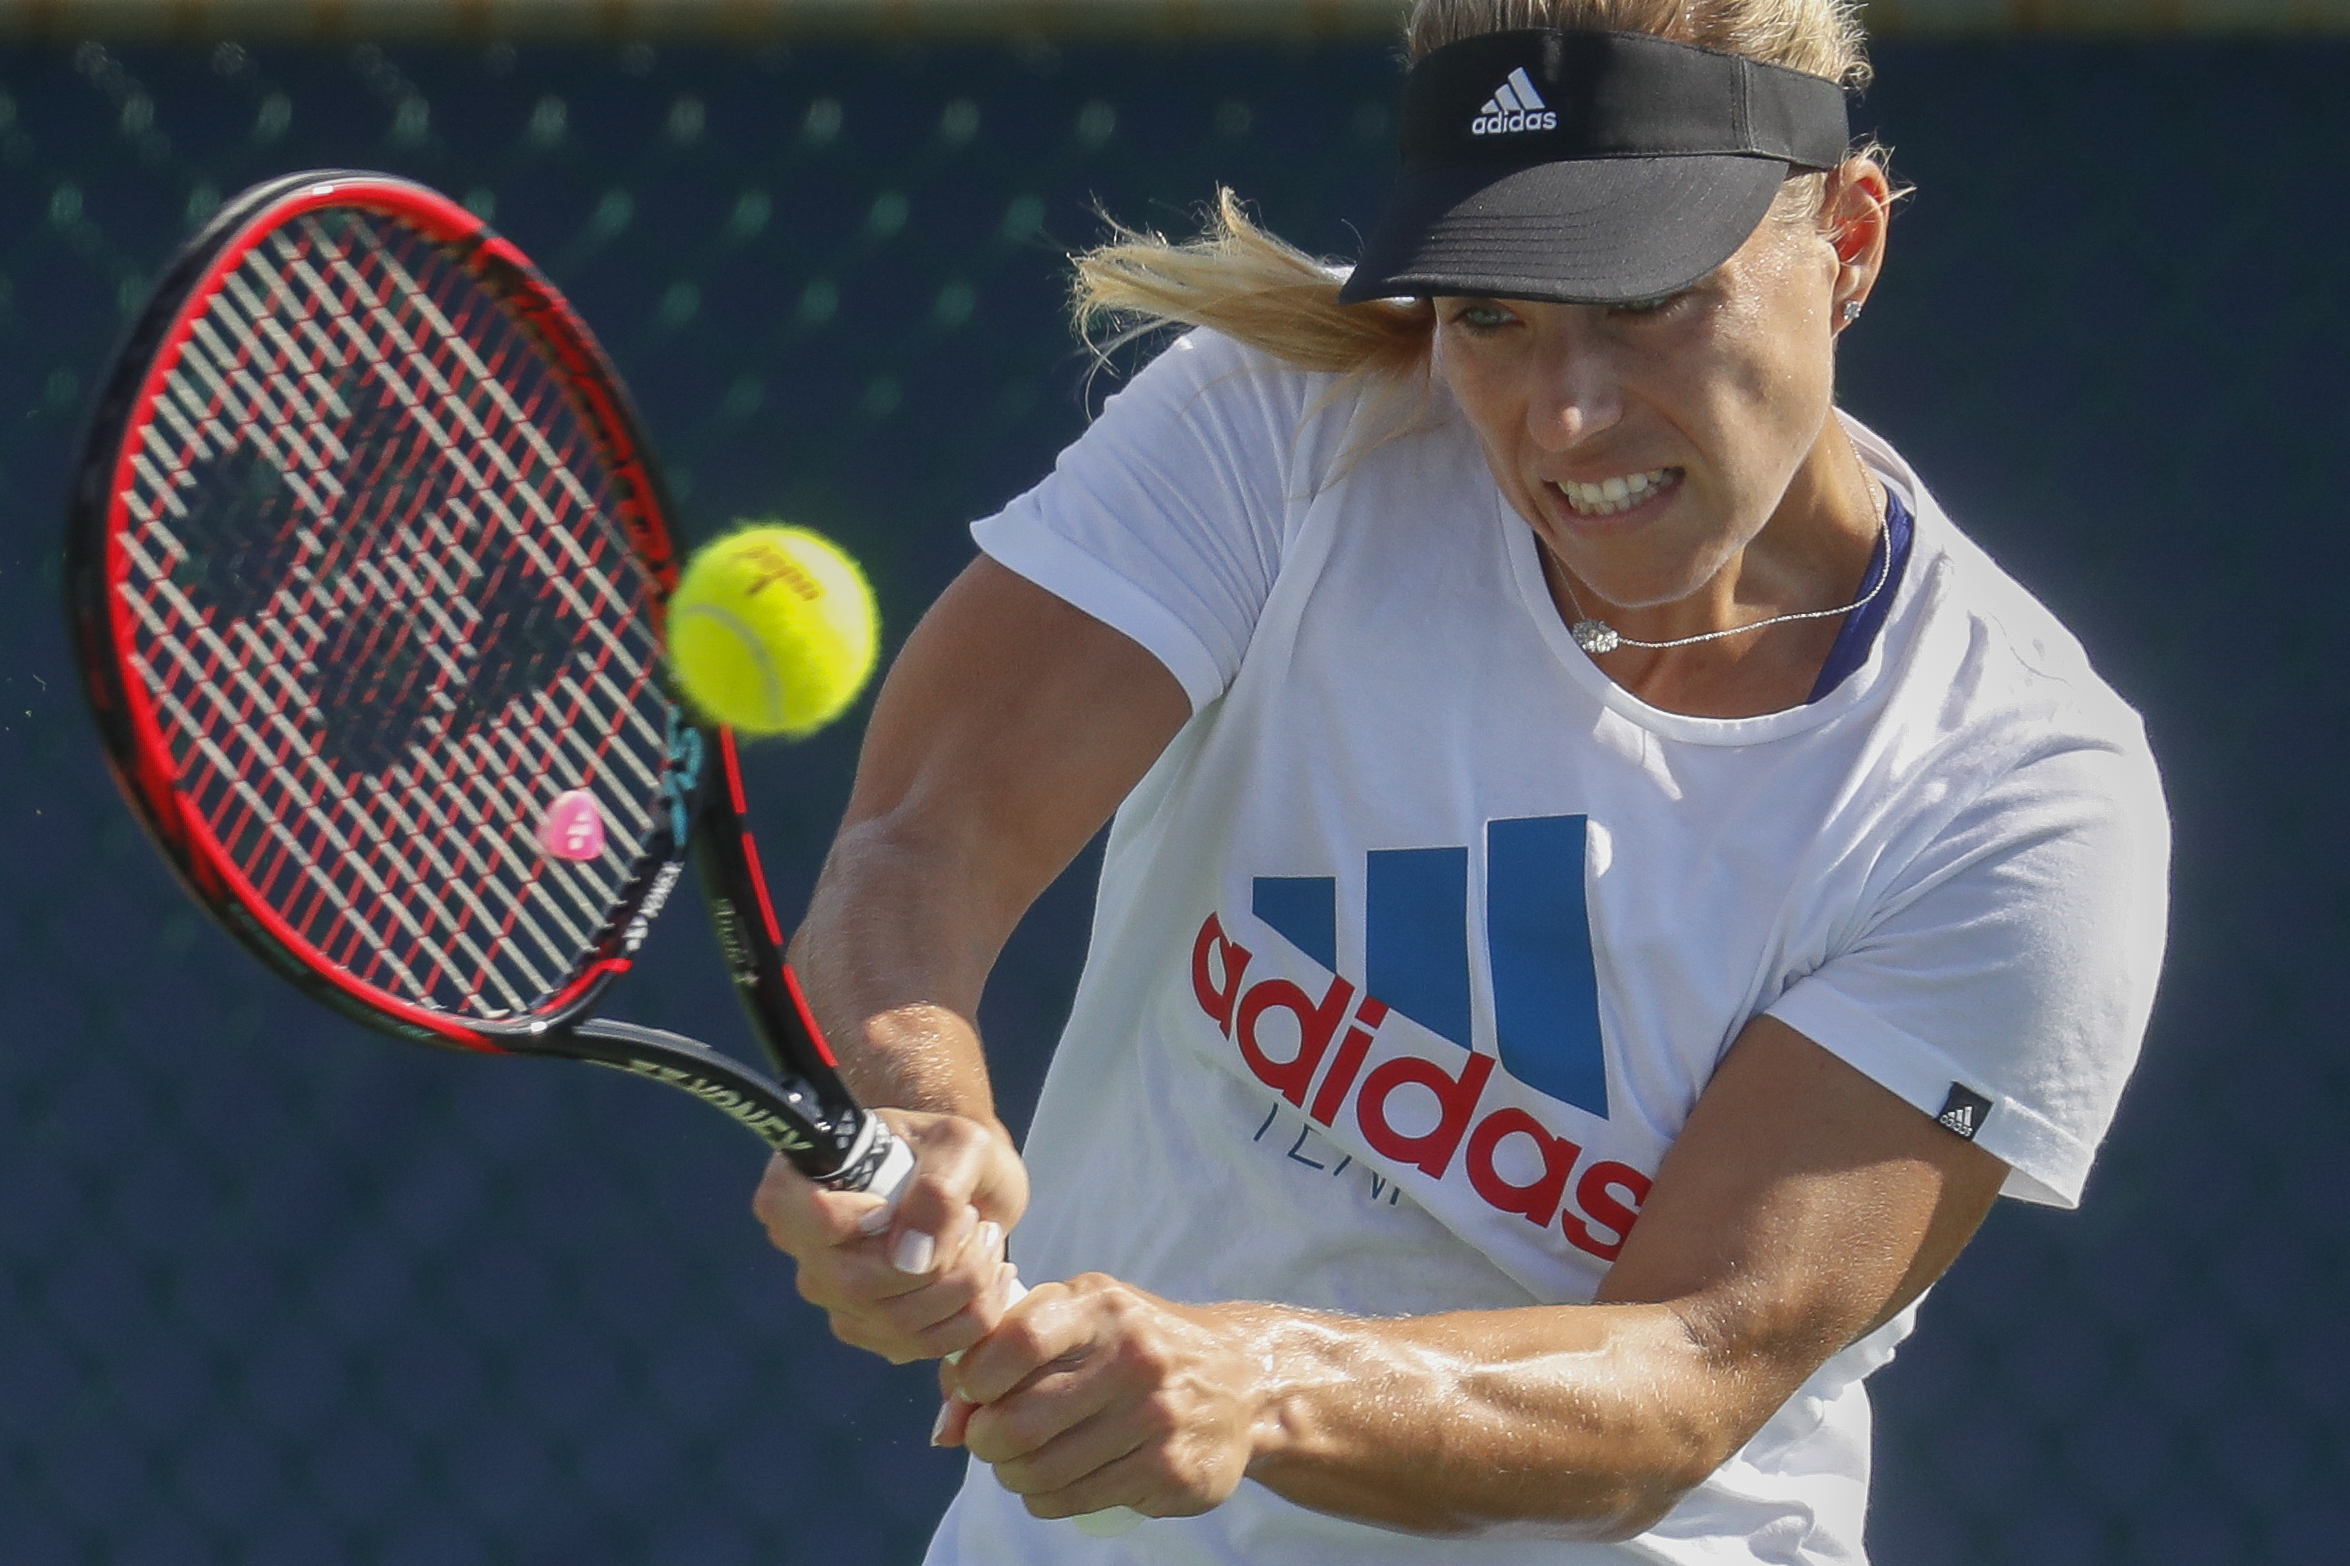 Angelique Kerber, of Germany, practices on the fourth day of the Western & Southern Open tennis tournament, Tuesday, Aug. 16, 2016, in Mason, Ohio. (AP Photo/John Minchillo)